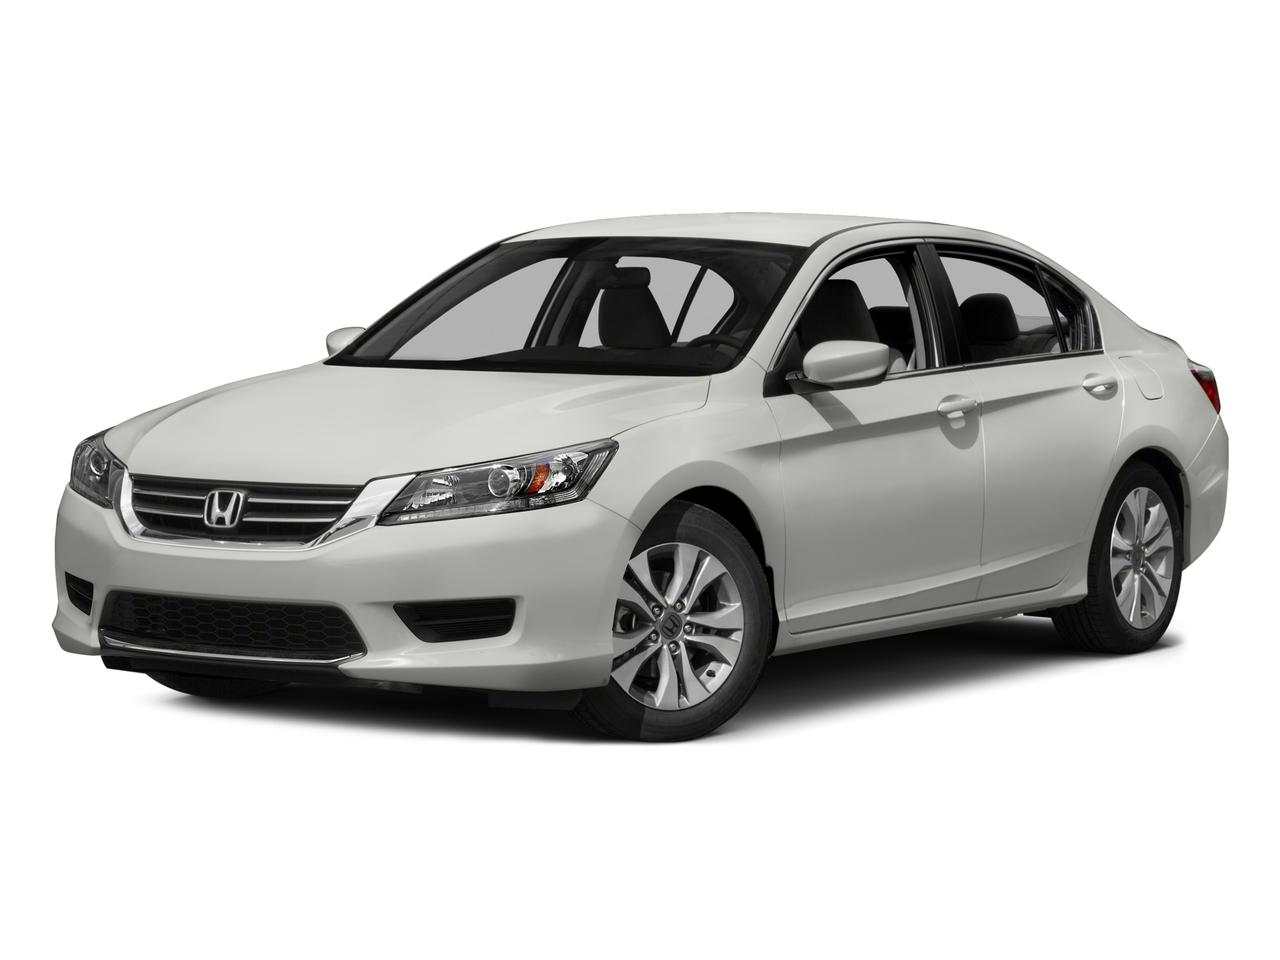 2015 Honda Accord Sedan Vehicle Photo in Vincennes, IN 47591